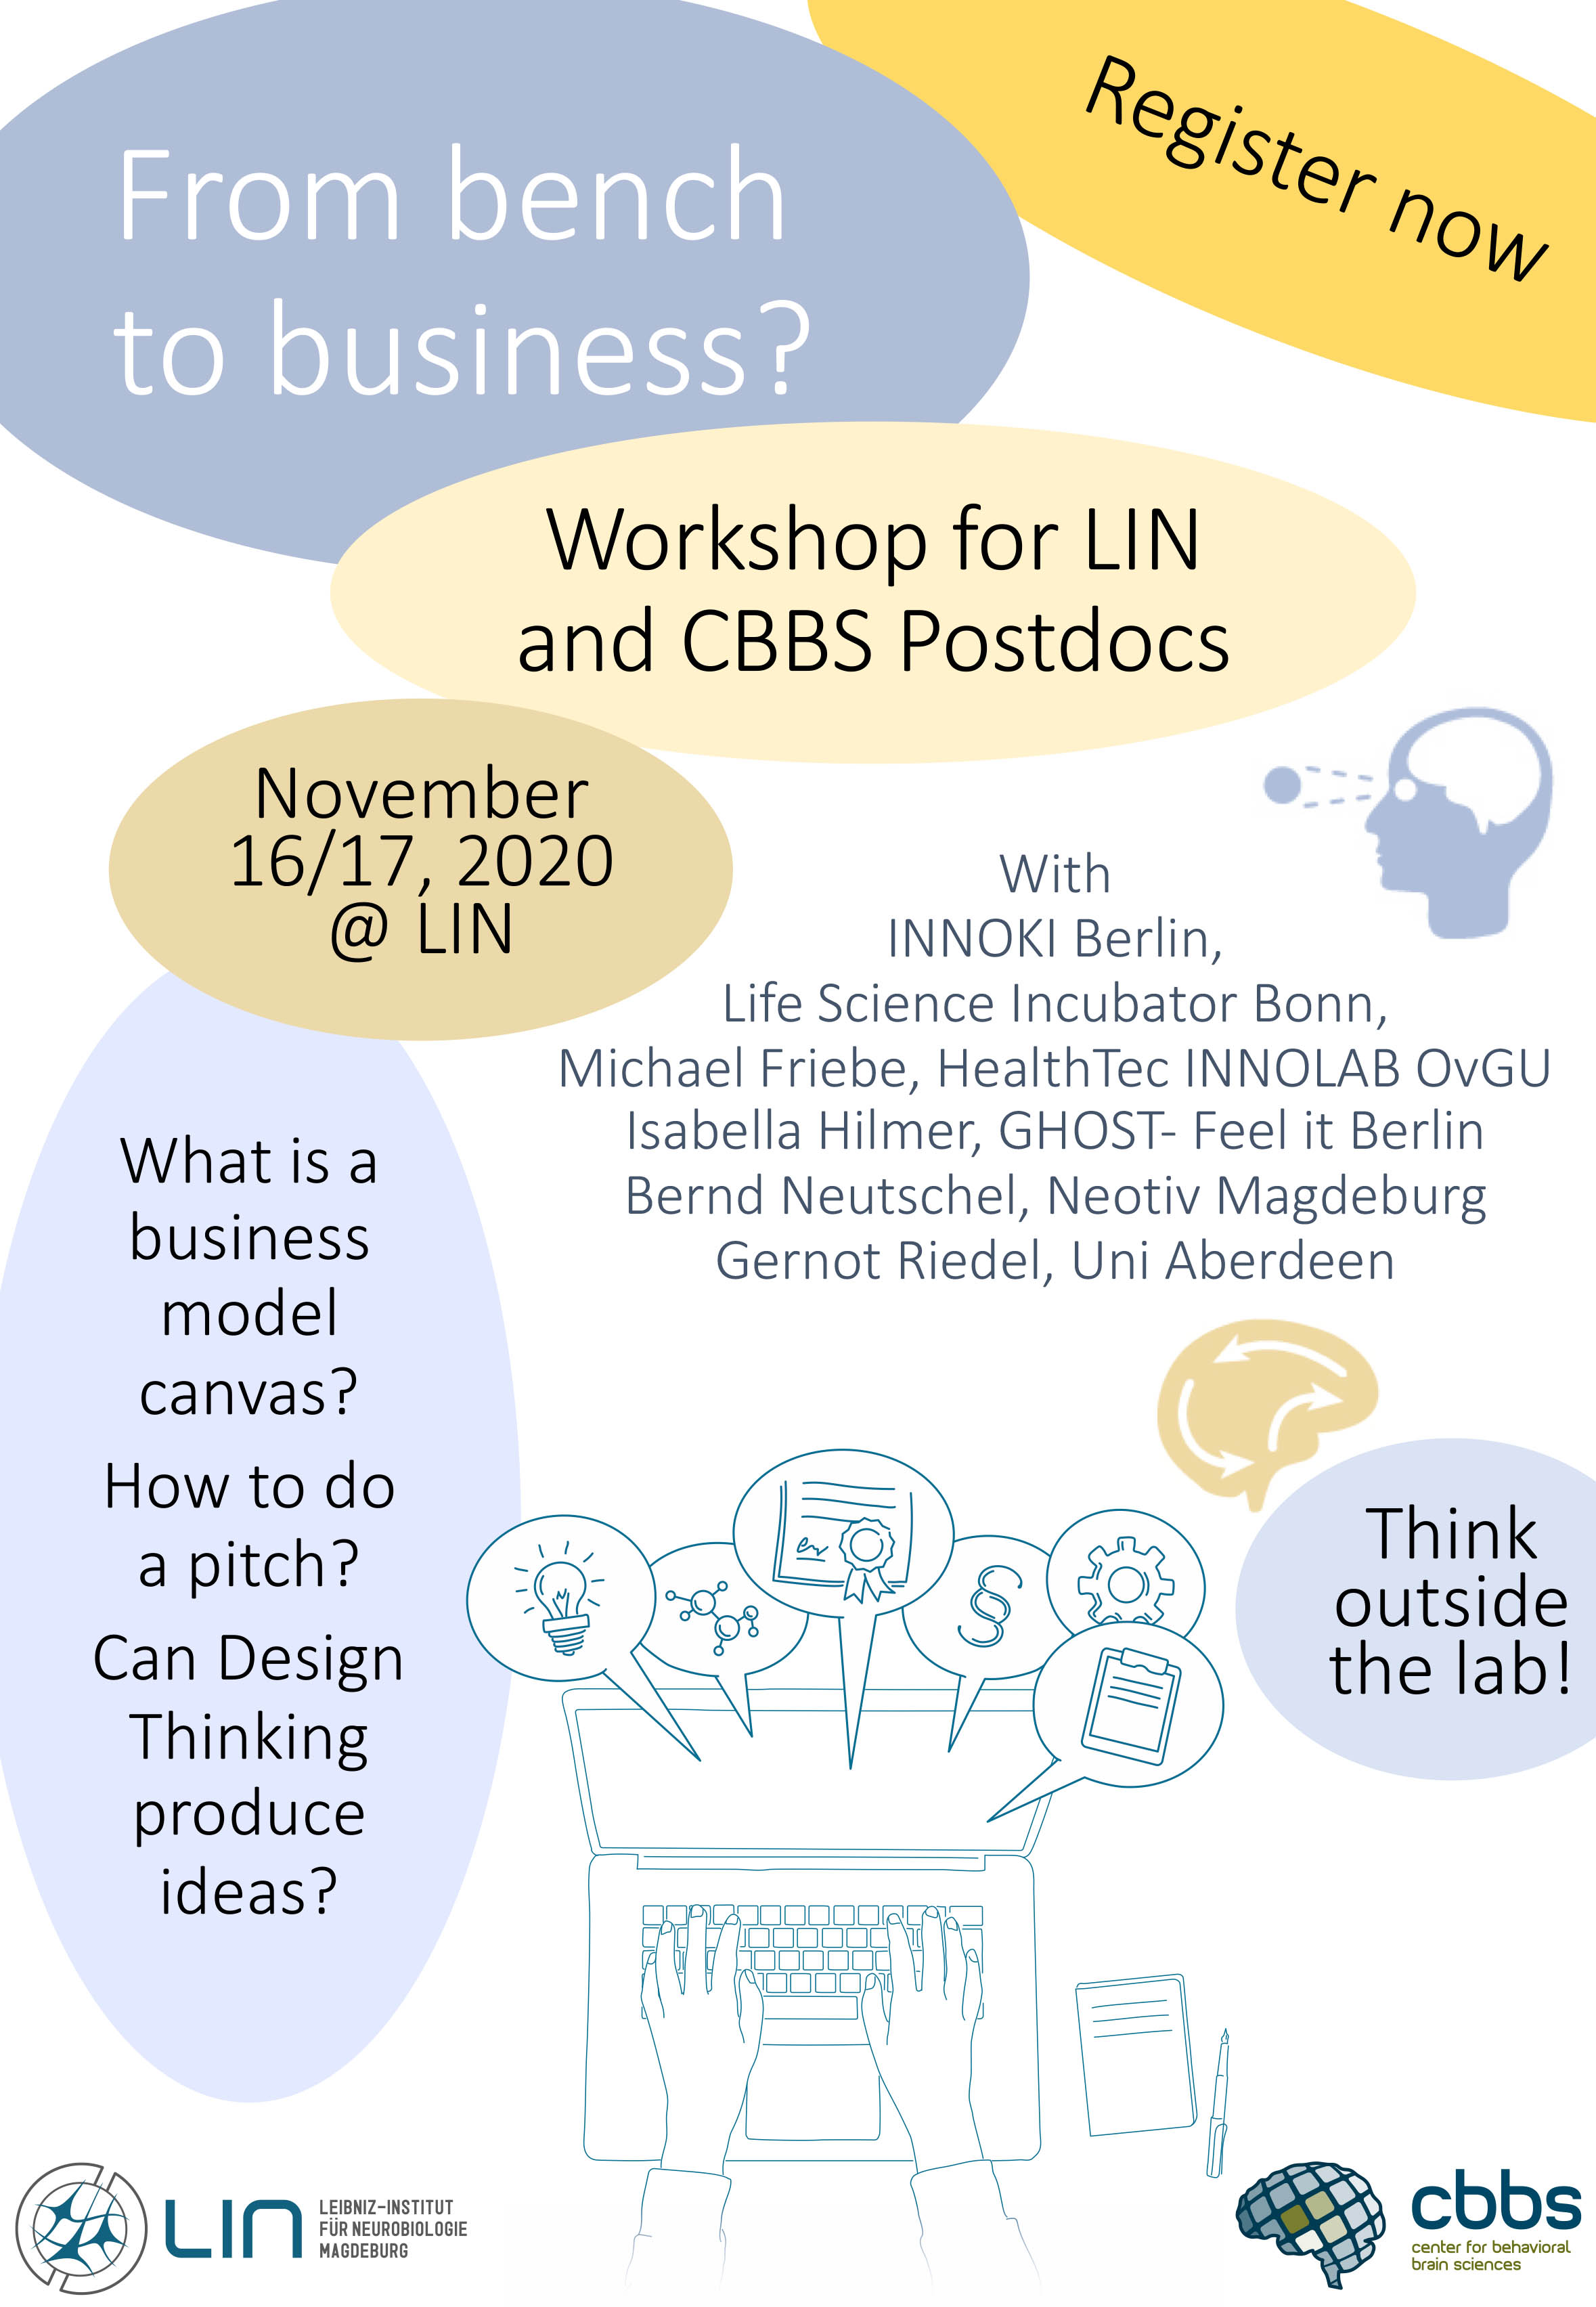 Workshop for LIN/CBBS Postdocs: From Bench to Business? @ LIN